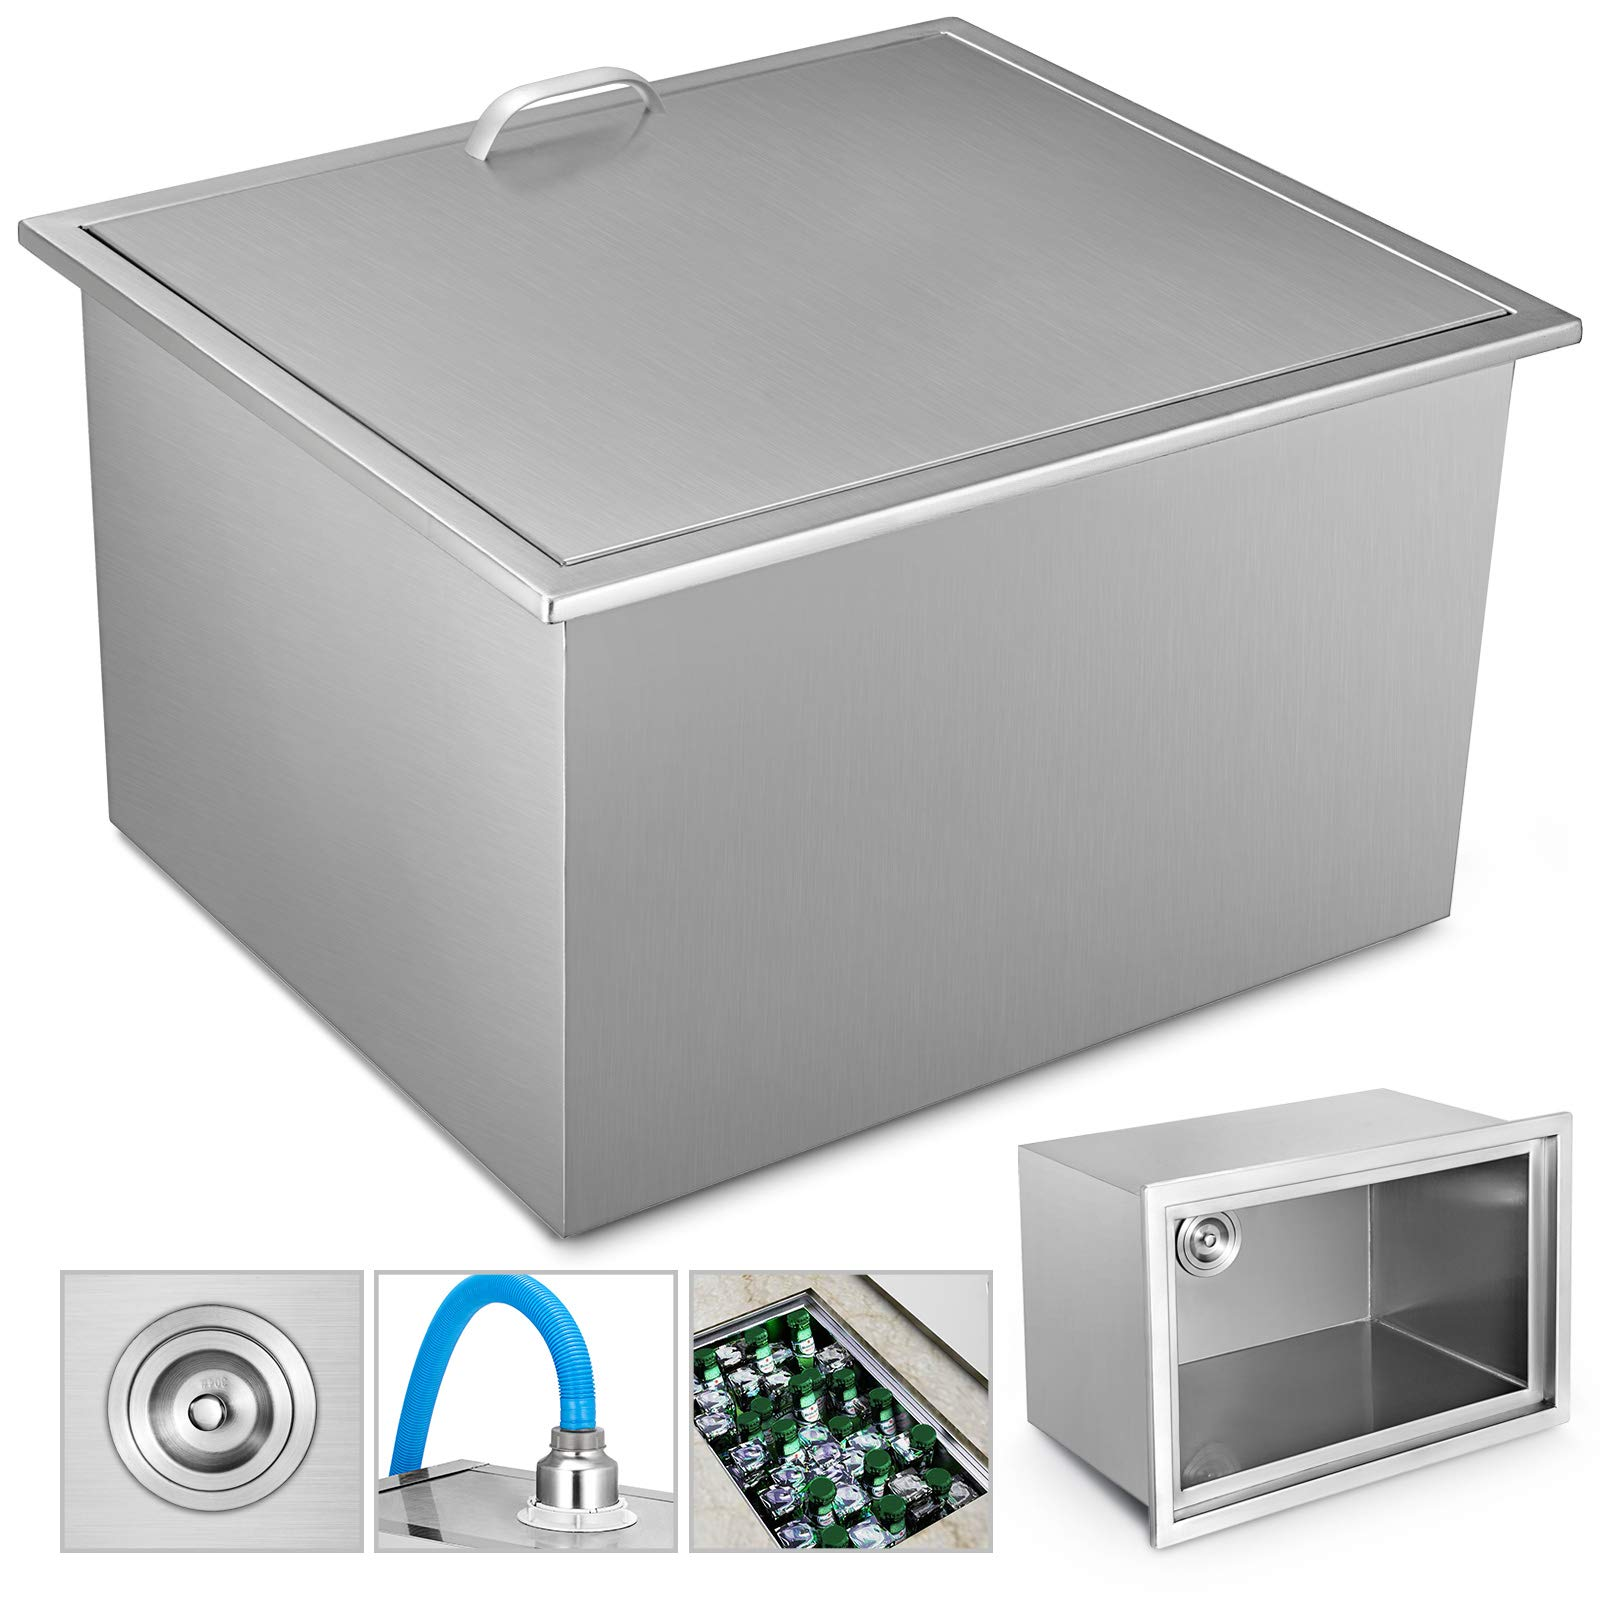 Happybuy Drop-in Ice Chest with Cover Stainless Steel Over/Under Height Single Basin Insulated Wall Drop in Cooler for Wine Beer Juice (23 x 17 x 12 Inch) by Happybuy